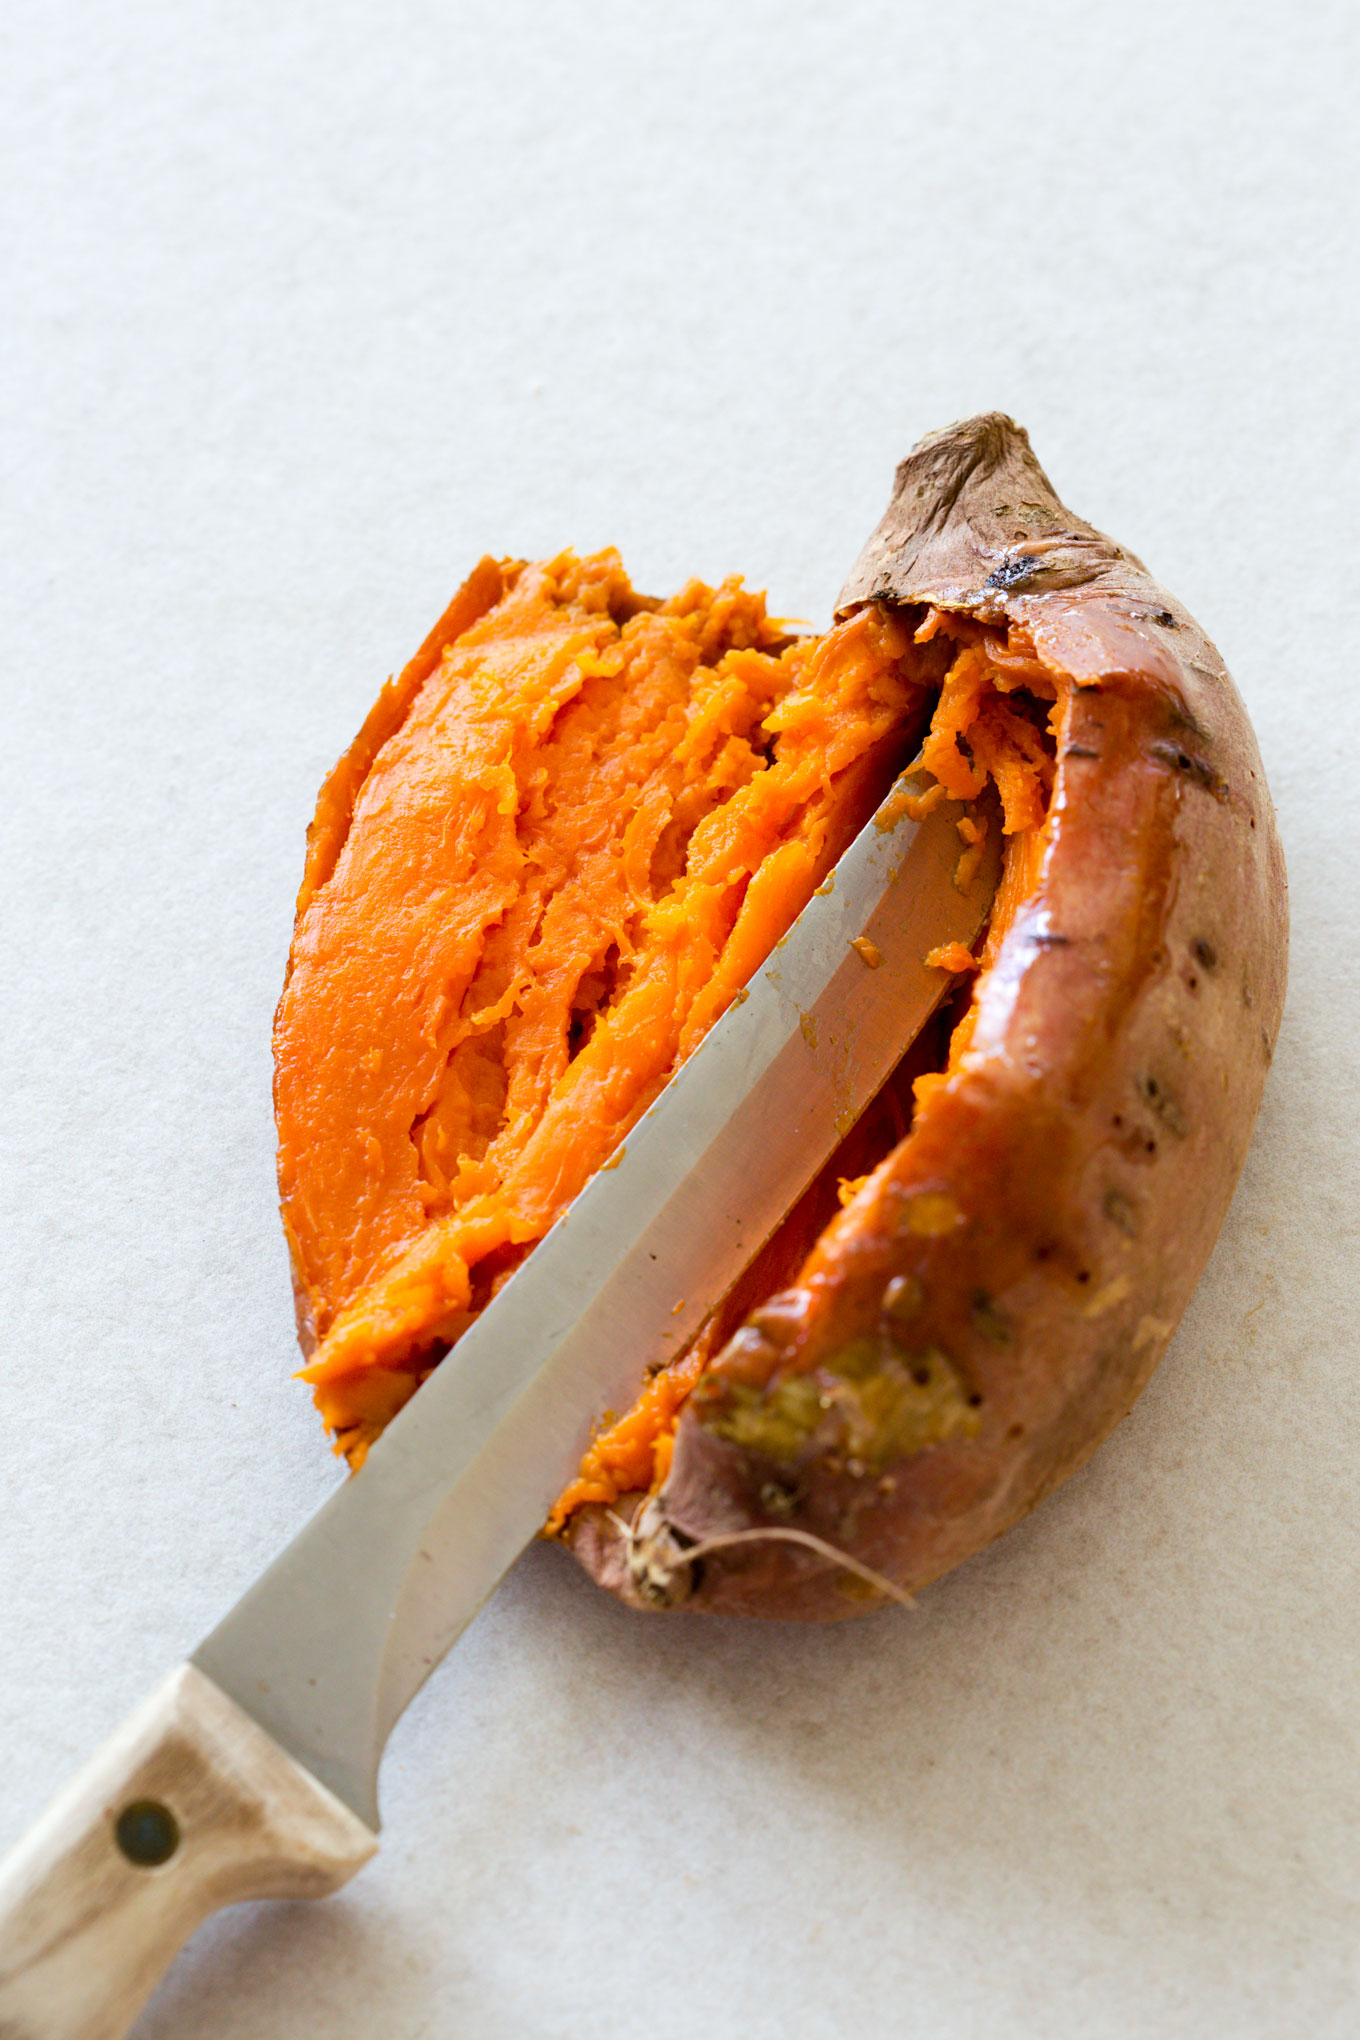 Baked Sweet Potato with a knife cut open